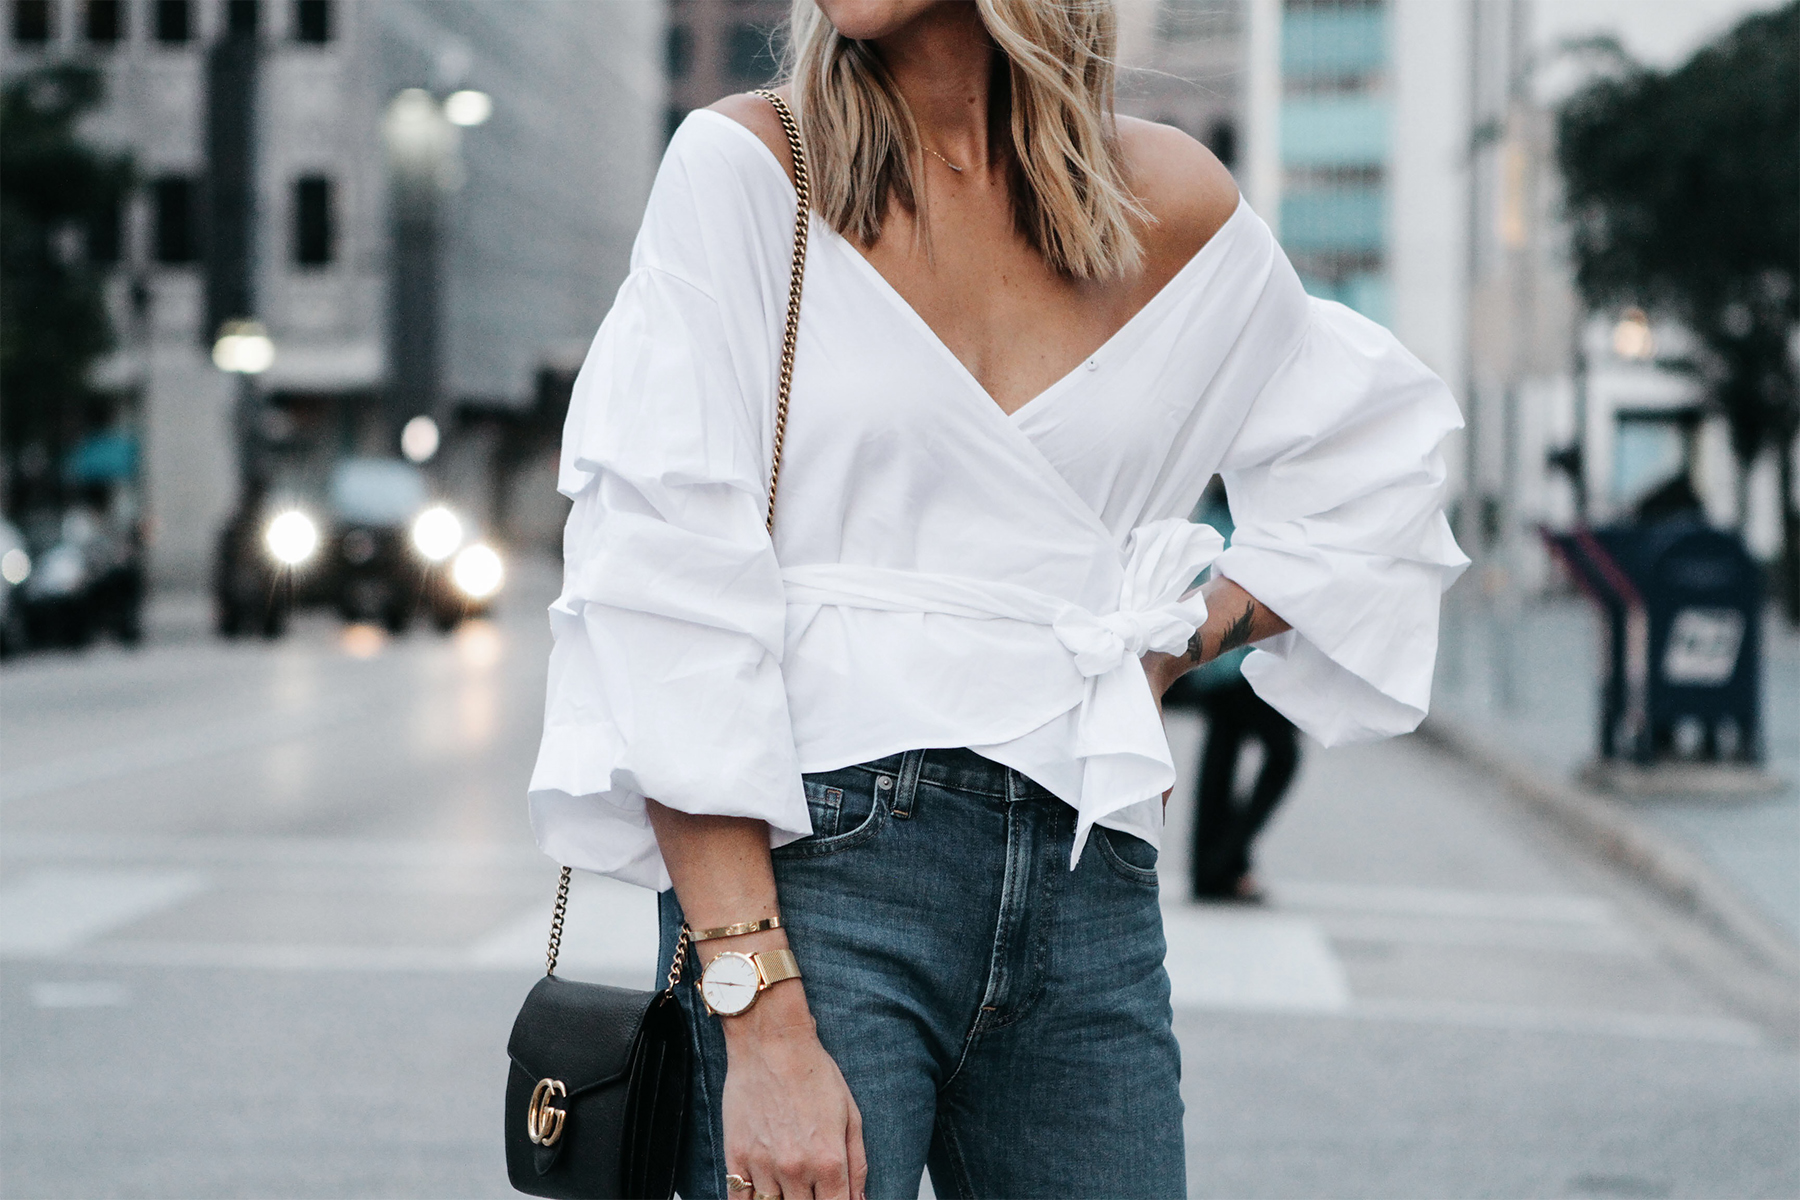 Club Monaco White Ruffle Sleeve Wrap Top Gucci Marmont Handbag Fashion Jackson Dallas Blogger Fashion Blogger Street Style